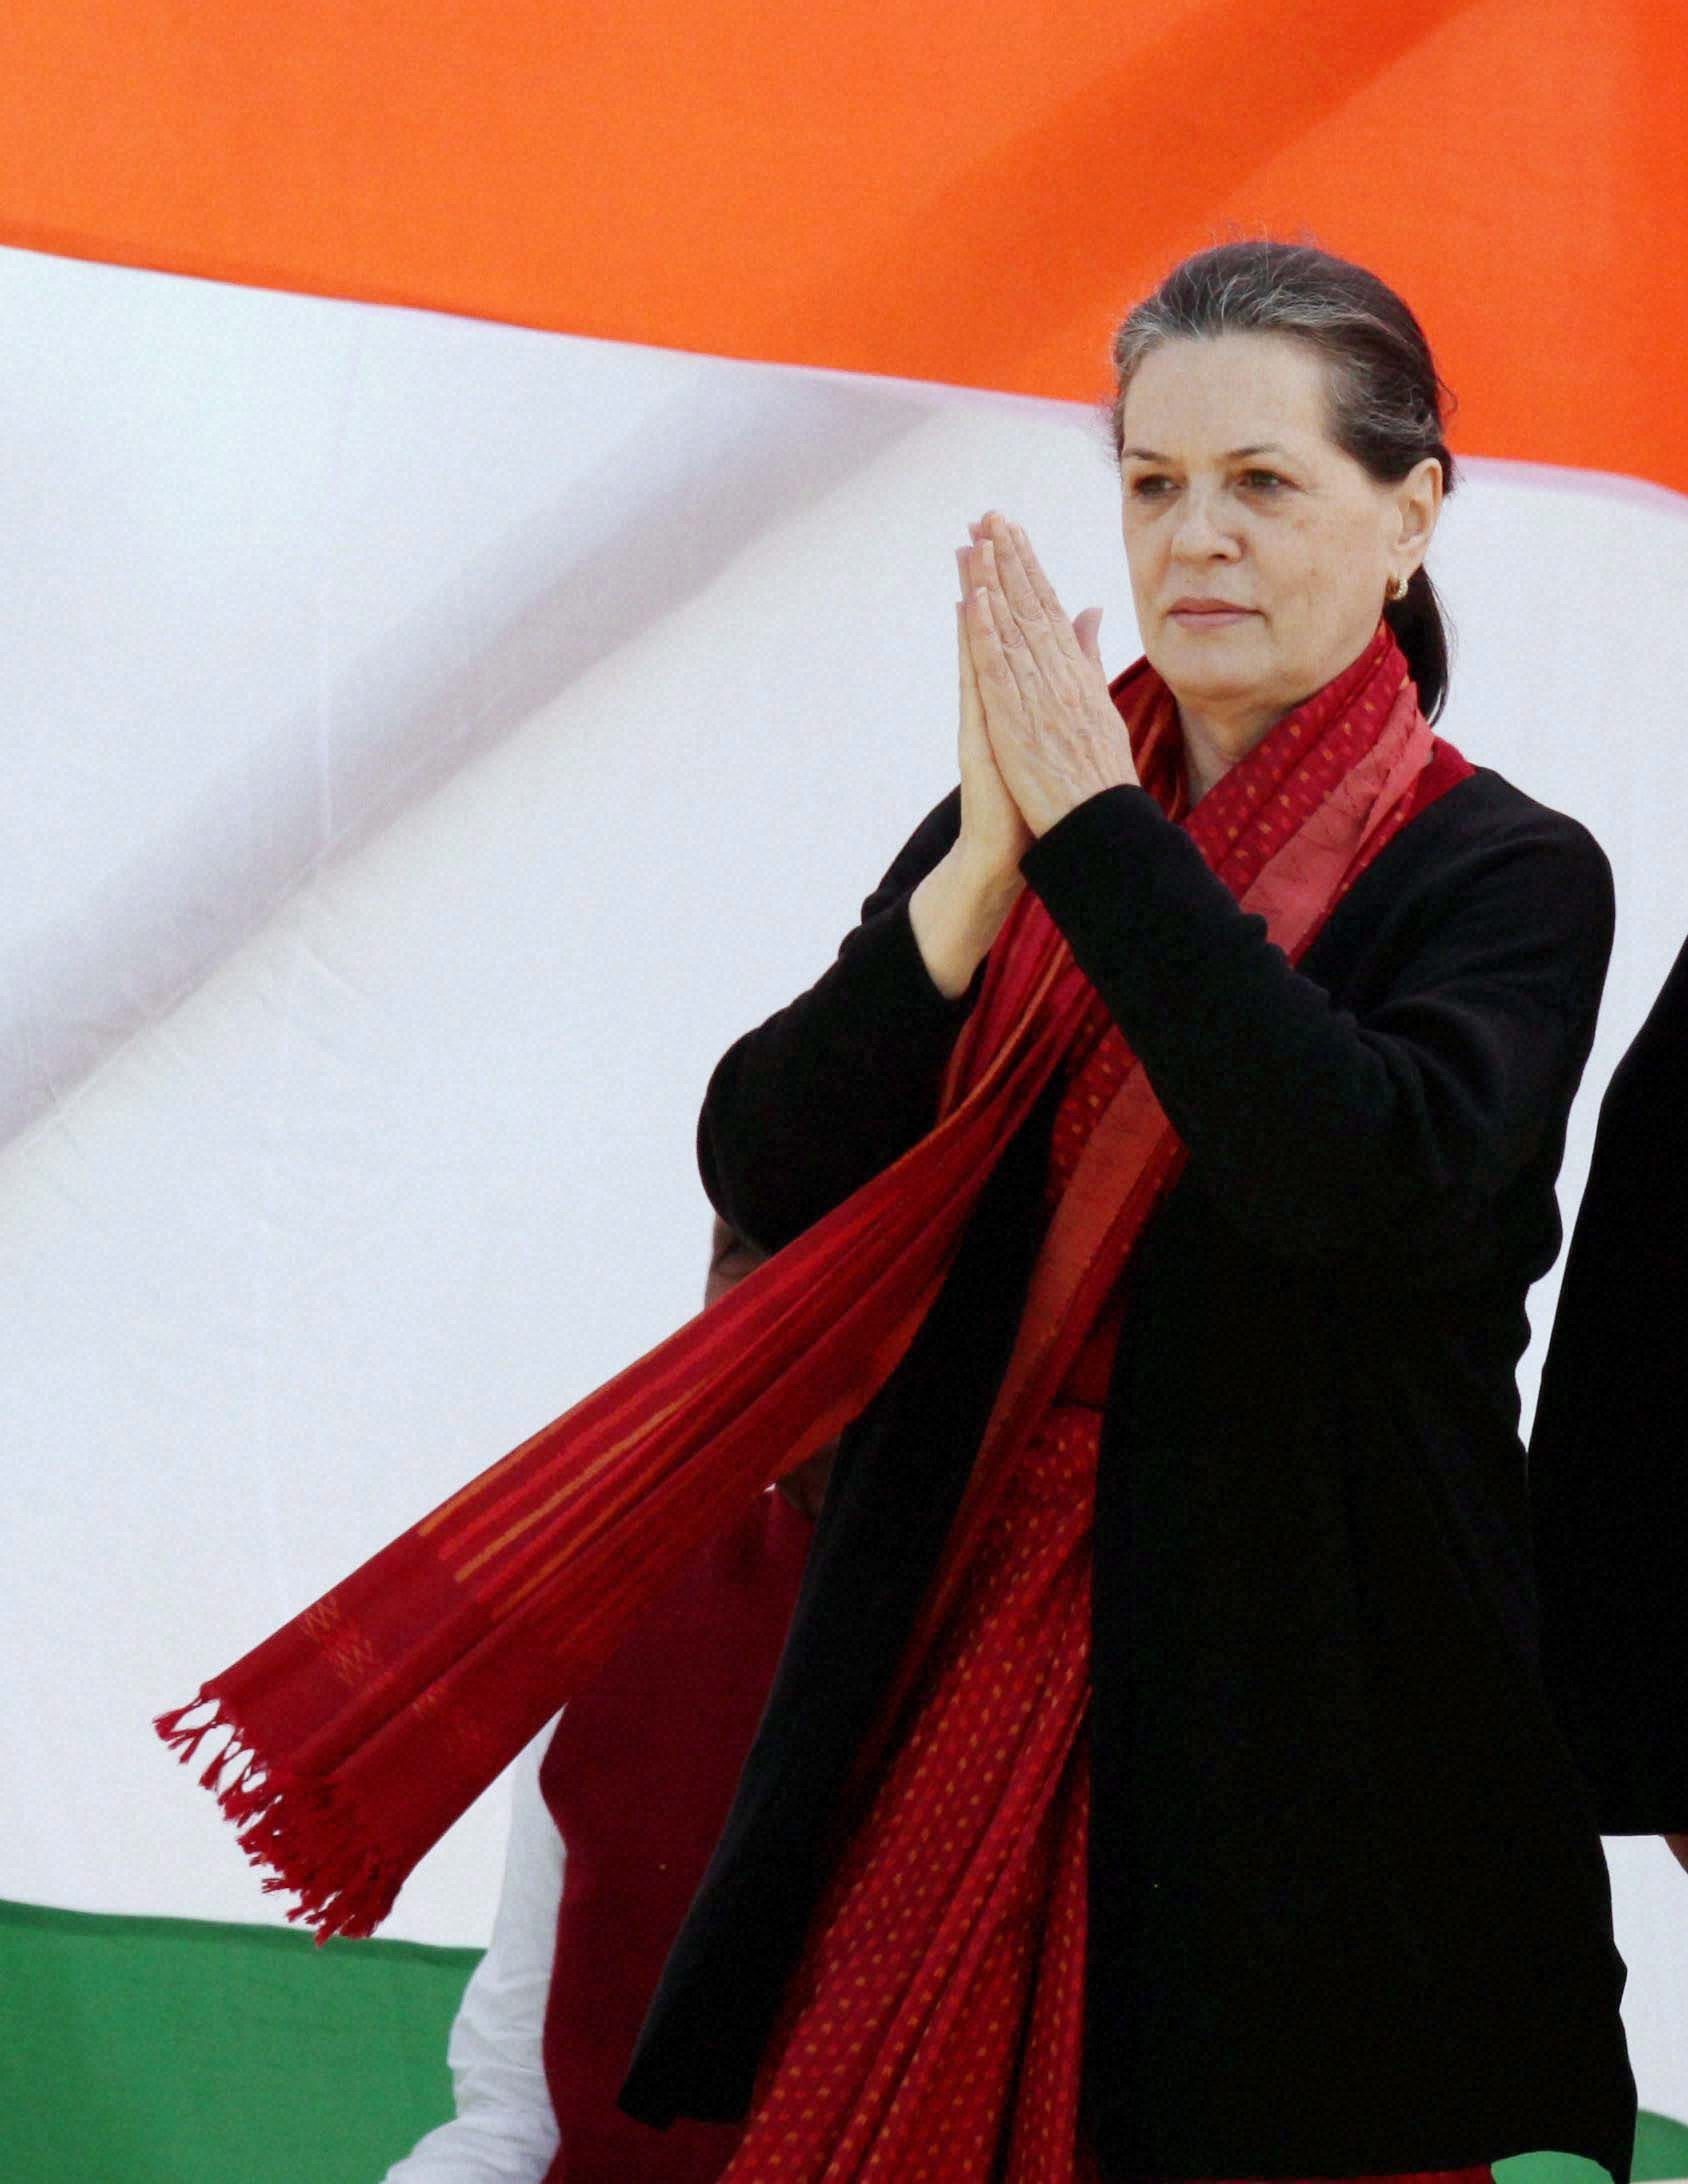 Fashionable-to-criticise-government-says-Sonia-Gandhi-to-Congress-MPs-http-ndtv-in-JeOfel-wallpaper-wp4605834